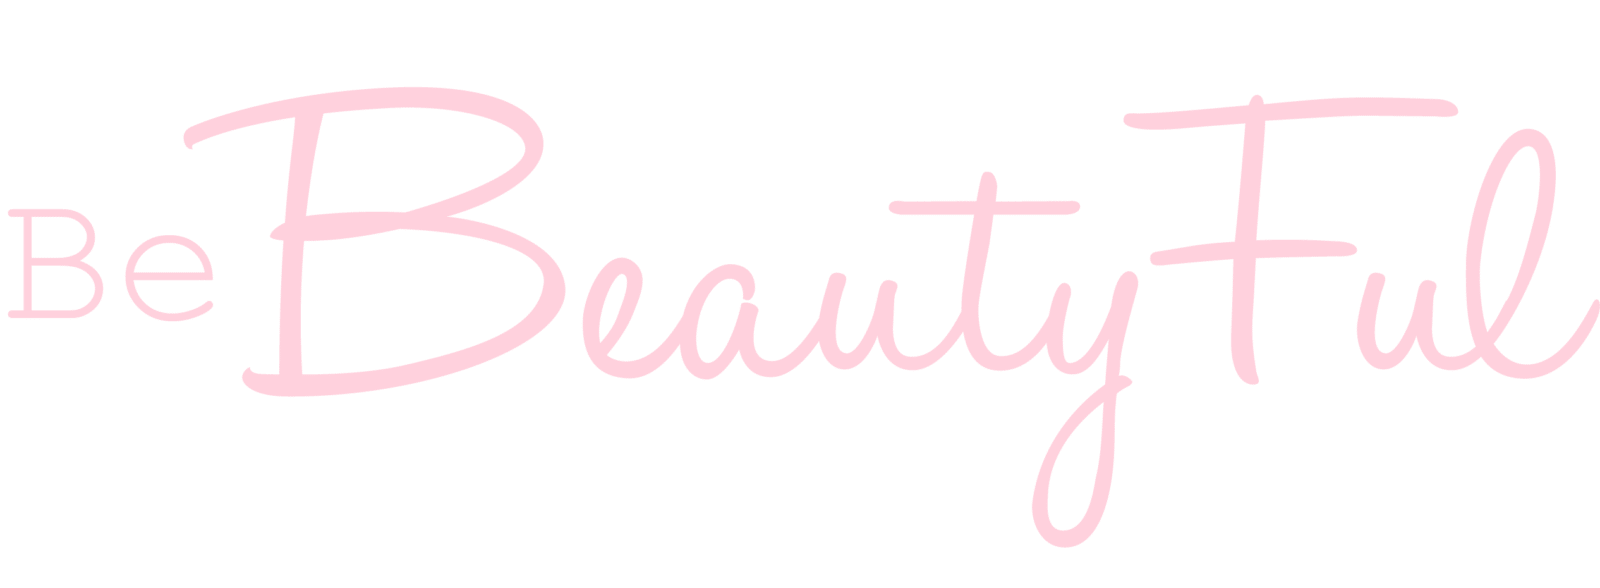 Be-BeautyFul5